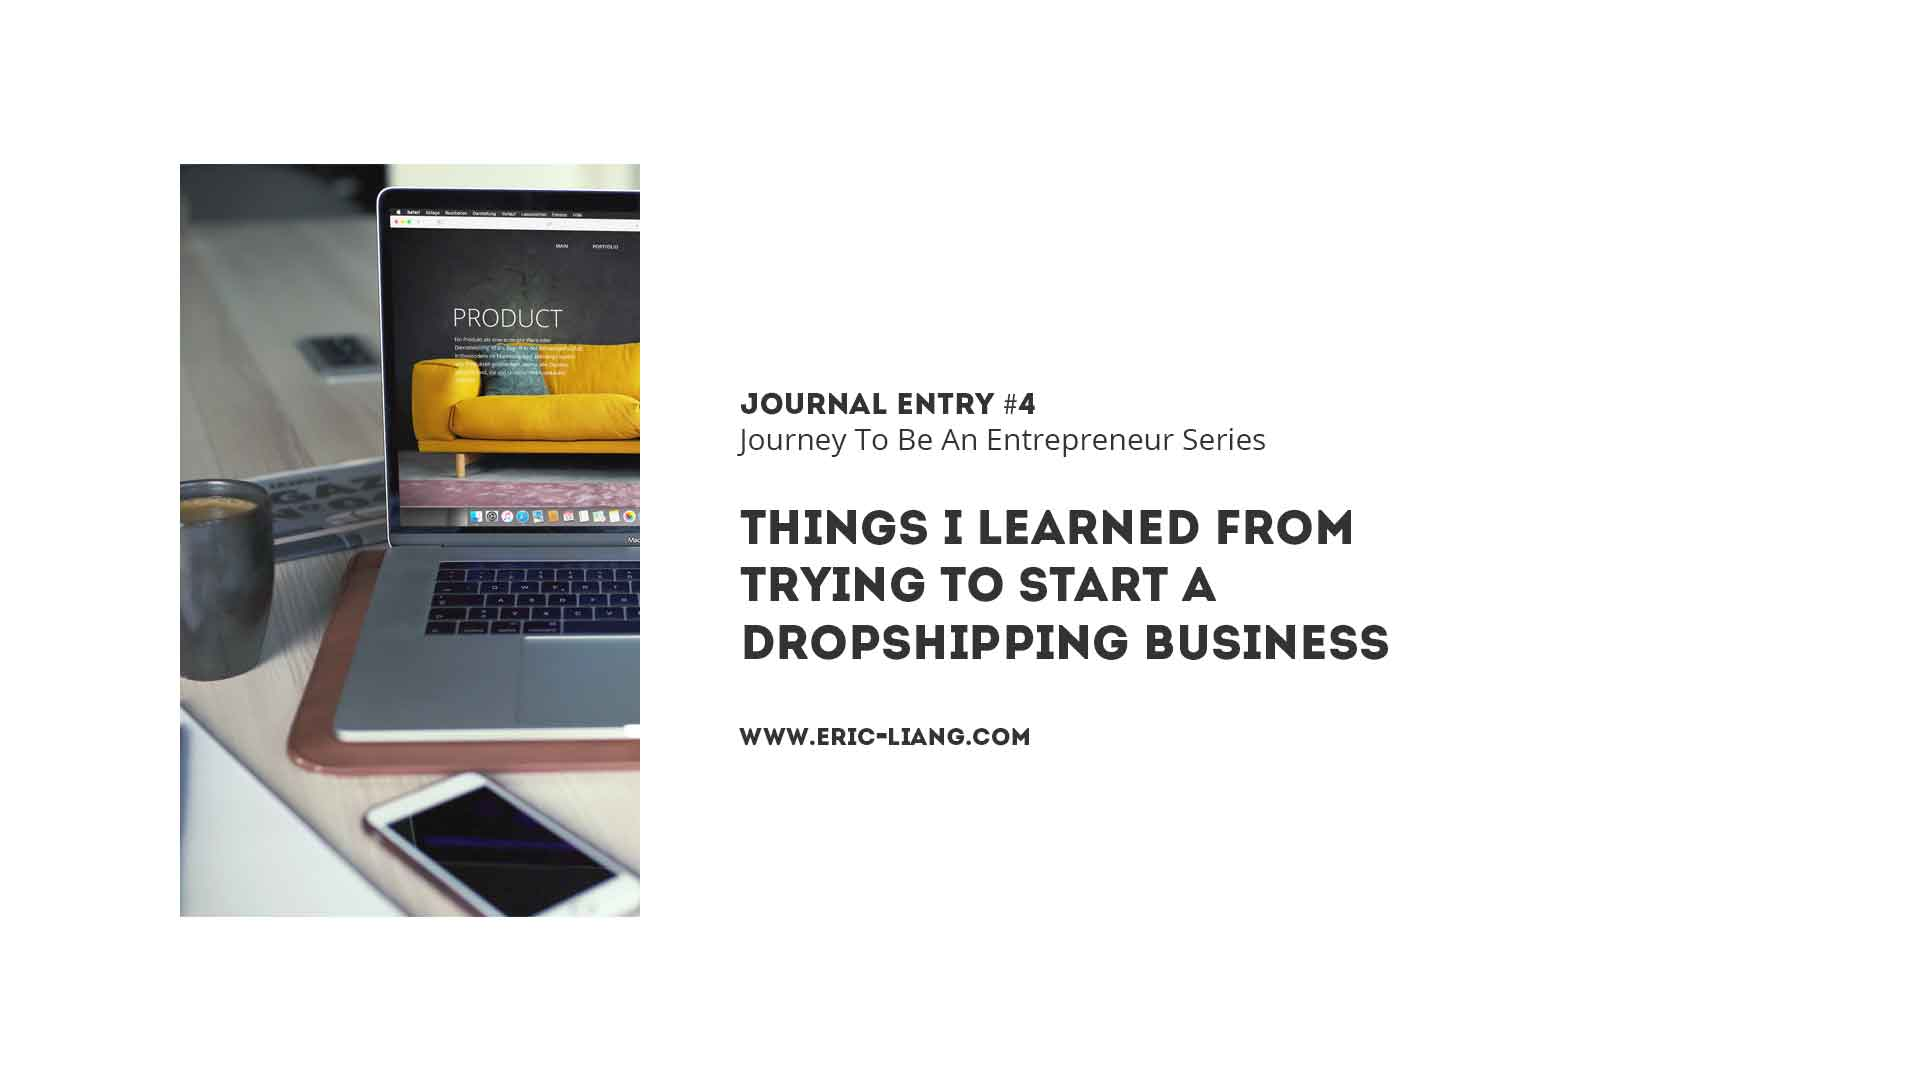 Journal Entry 4: Things I Learned From Trying To Start A Dropshipping Business